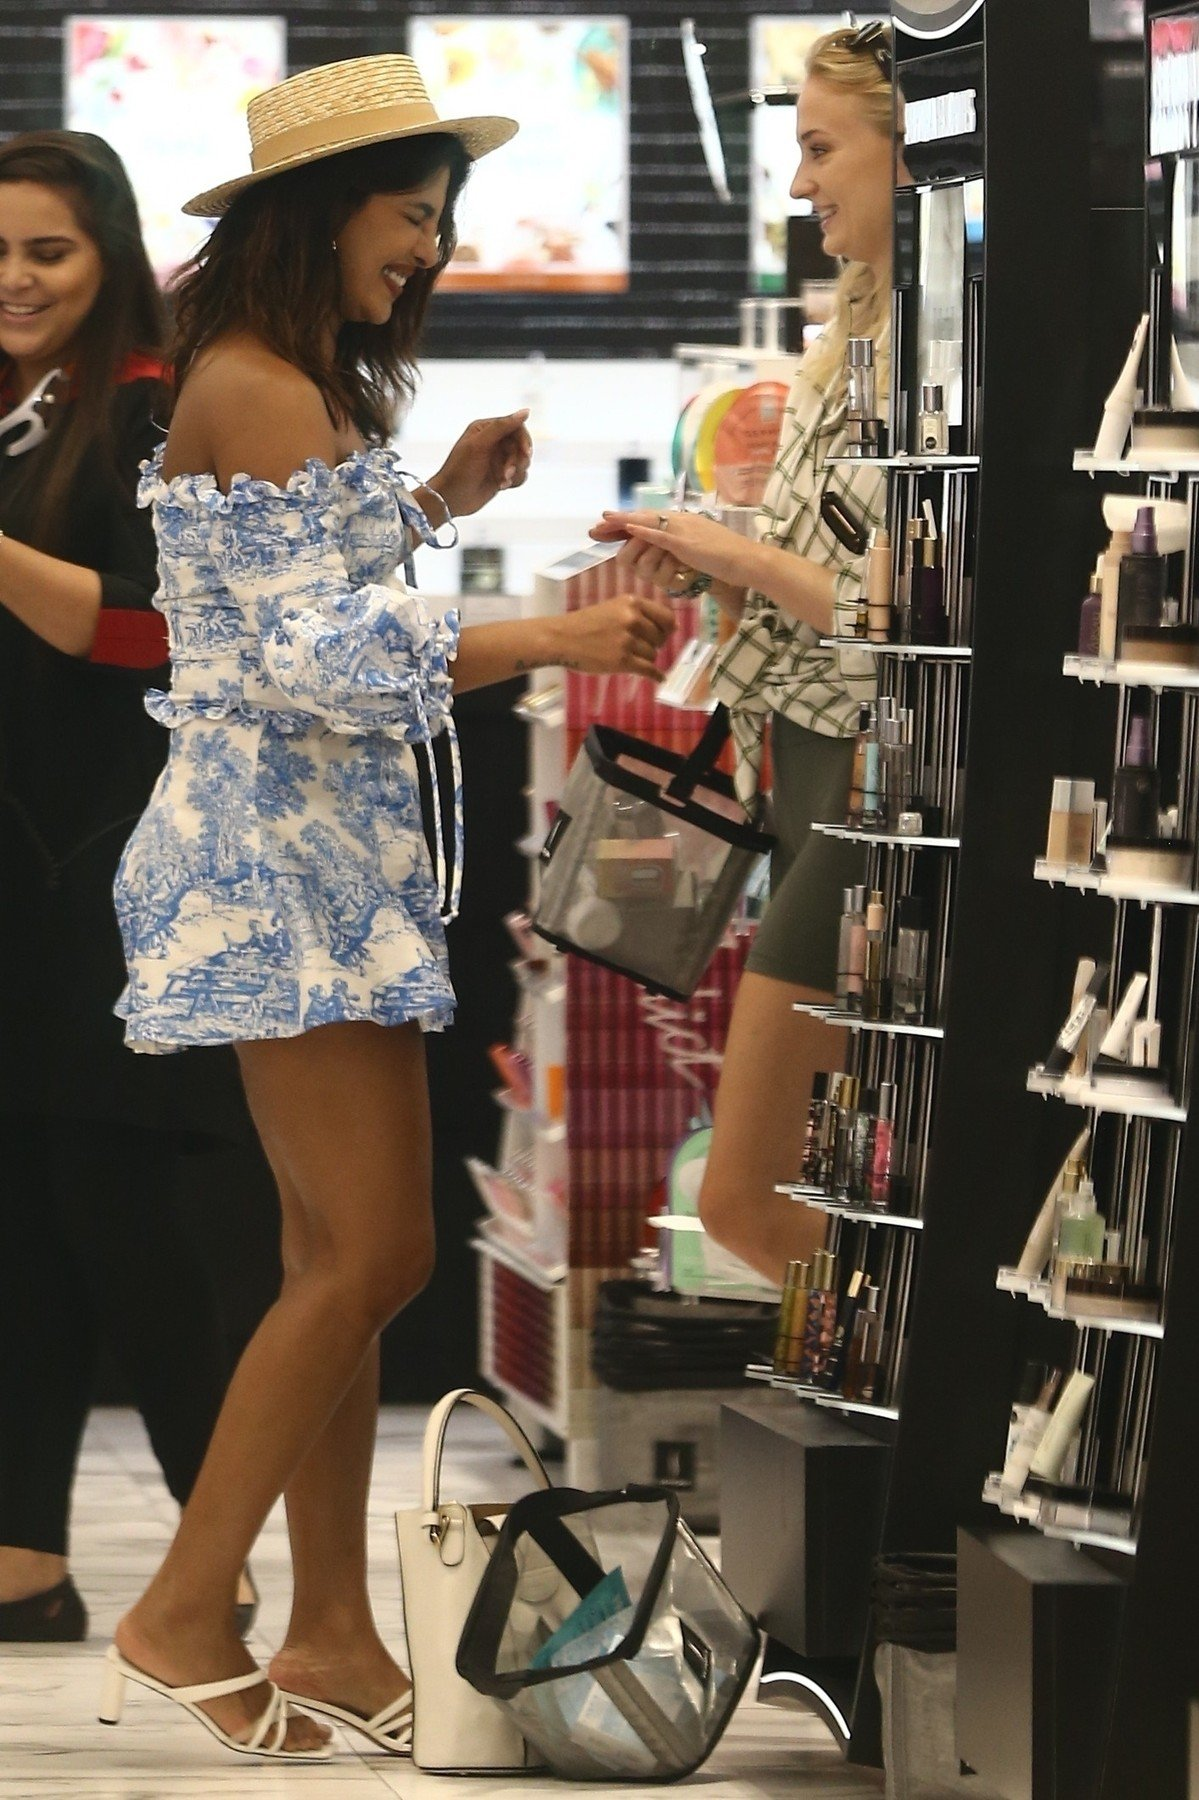 Pensacola, FL  - Sophie Turner and Priyanka Chopra go shopping together while their husbands rehearse for their upcoming Jonas Brothers show. Sophie and Priyanka look cute as they enjoy their Summer day shopping.  *UK Clients - Pictures Containing Children Please Pixelate Face Prior To Publication*, Image: 462367709, License: Rights-managed, Restrictions: , Model Release: no, Credit line: Profimedia, Backgrid USA